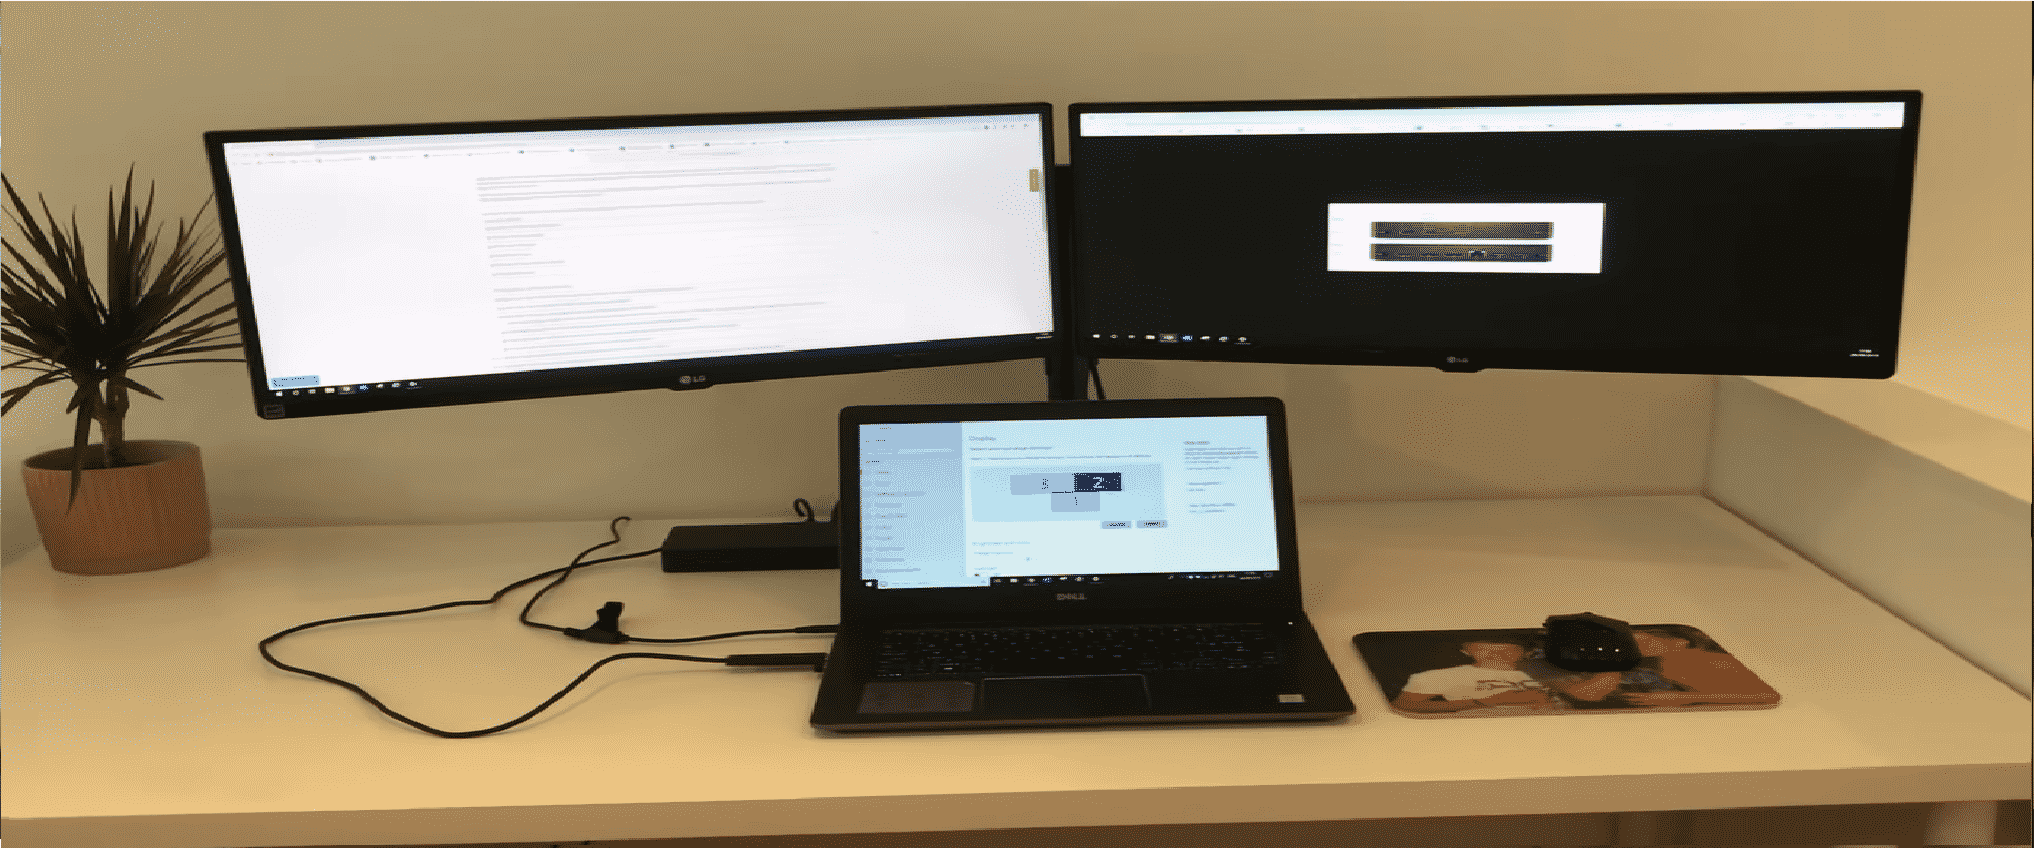 How to connect 3 monitors to a laptop docking station - Tekno Wifi